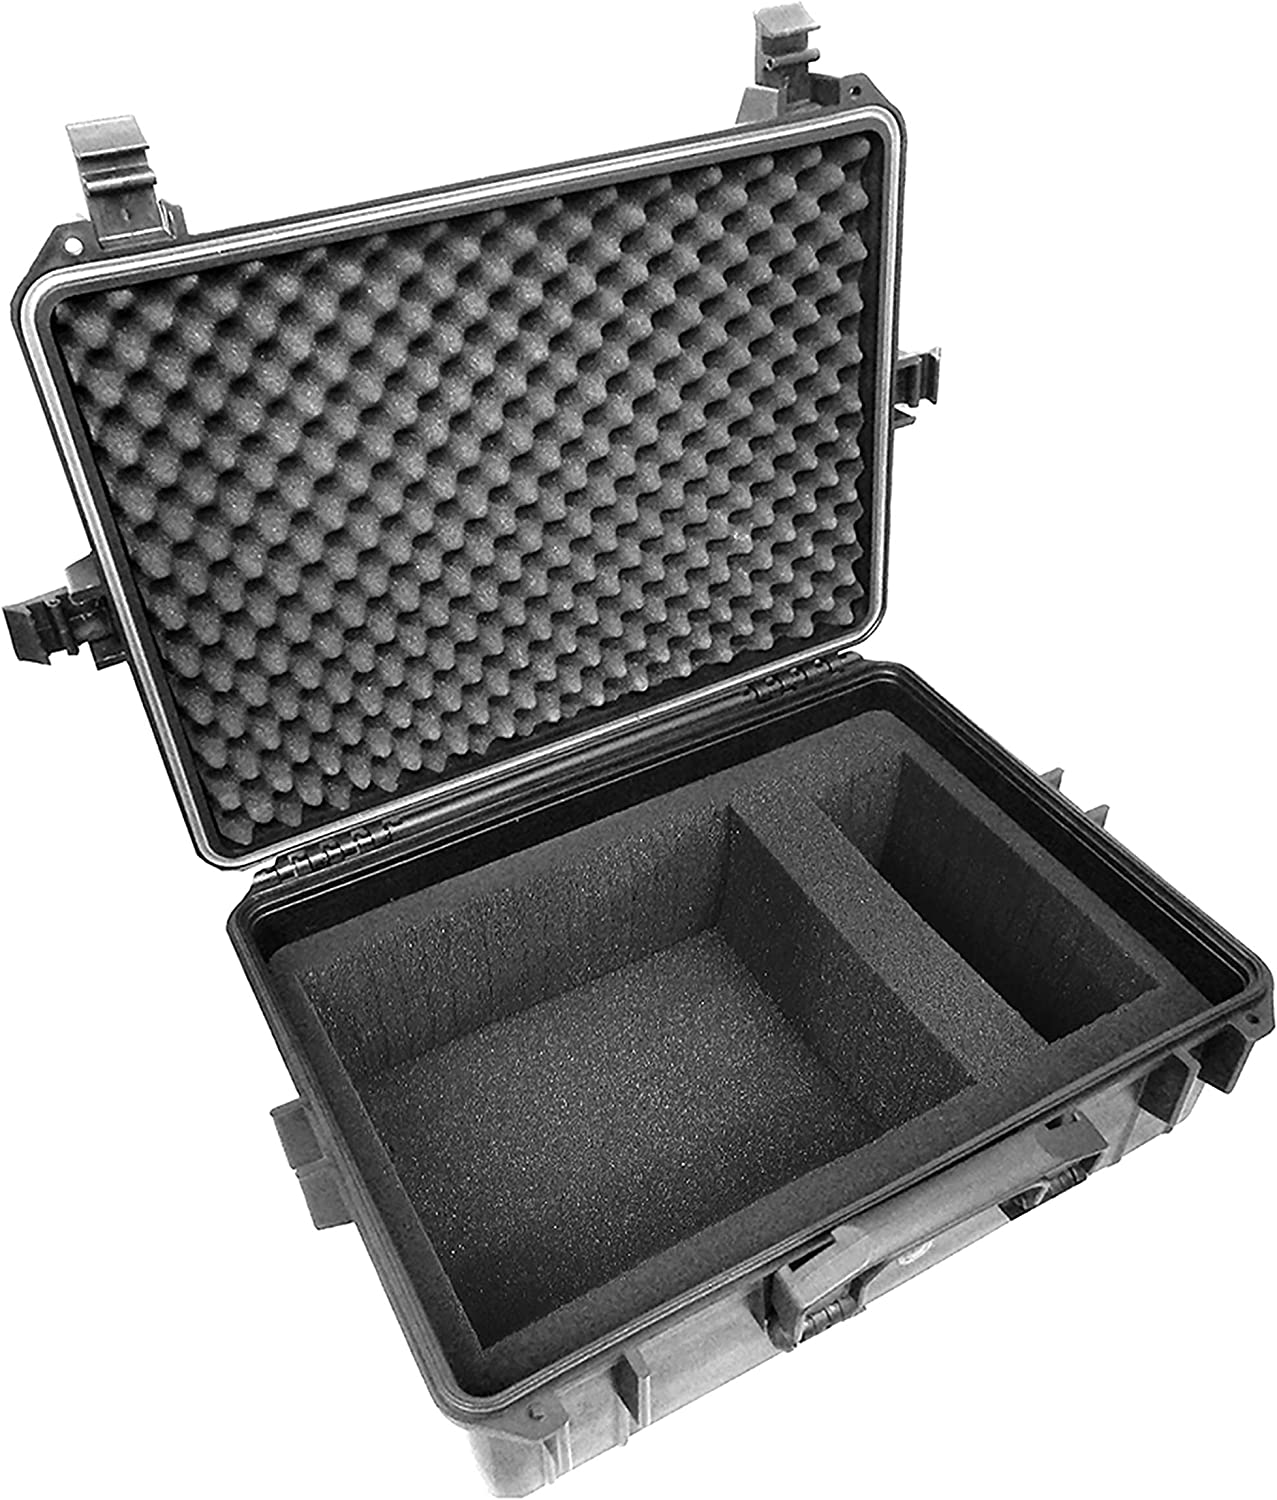 CASEMATIX Rugged Waterproof Courier shipping free shipping All stores are sold Projector Compatible Case with BenQ